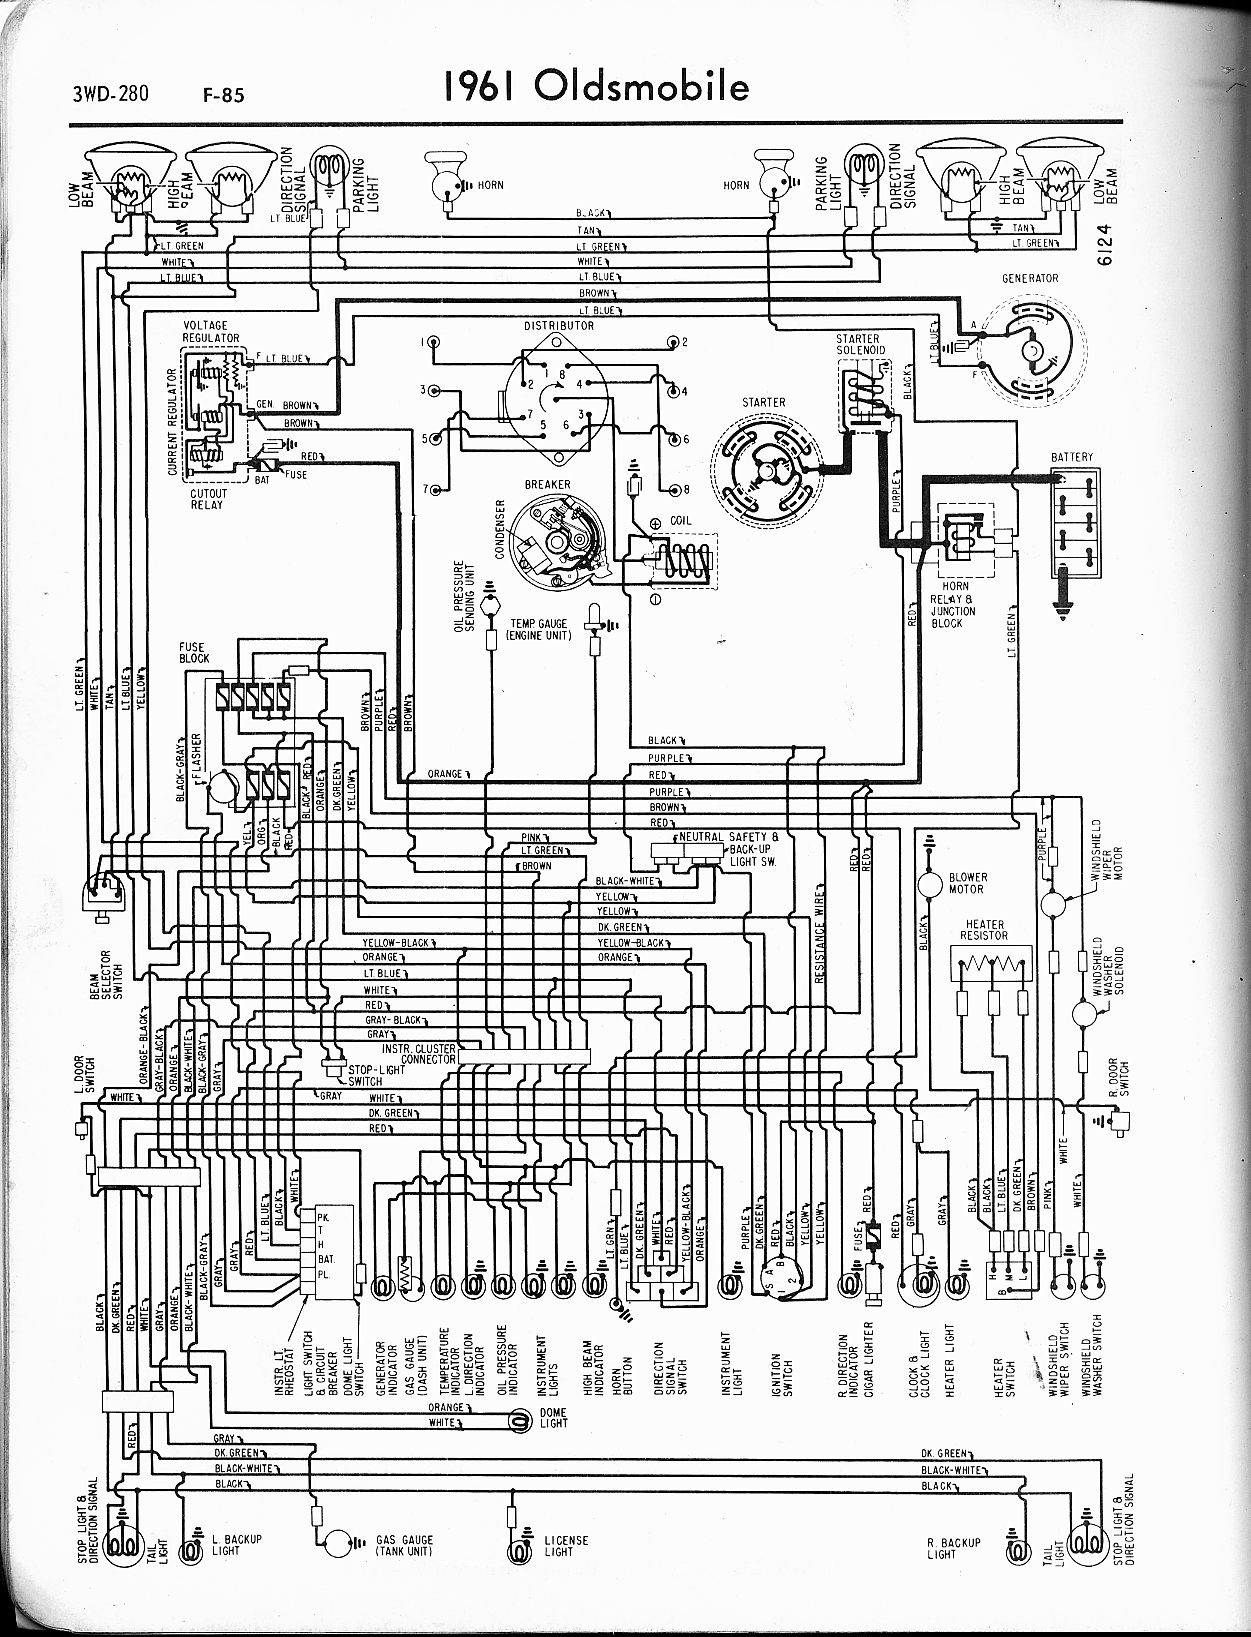 1974 oldsmobile omega wiring diagram oldsmobile cutlass supreme wiring diagram pictures 1974 vw beetle wiring diagram 1968